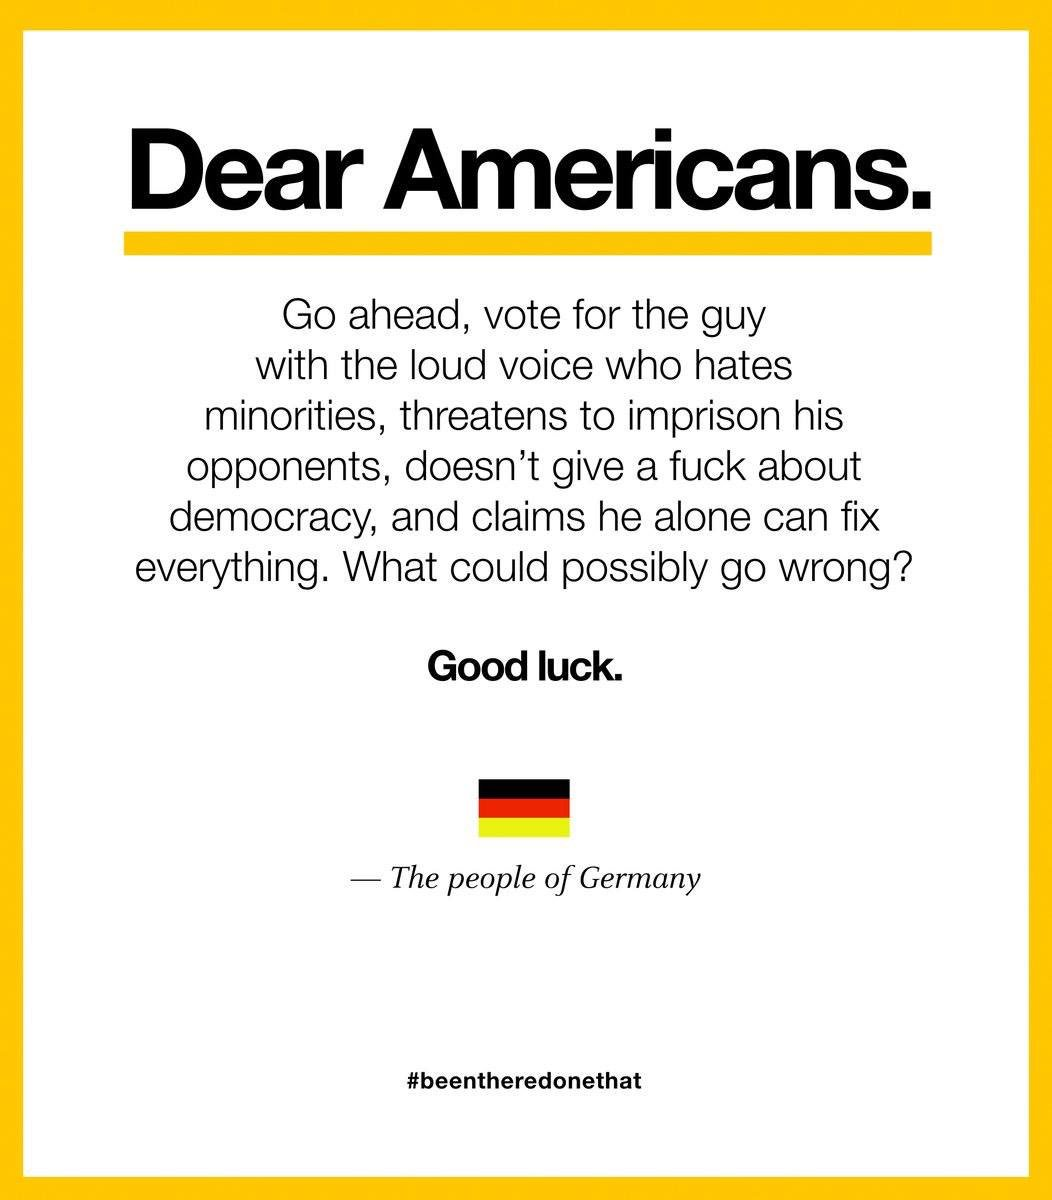 Dear Americans (anti-Trump German ad)